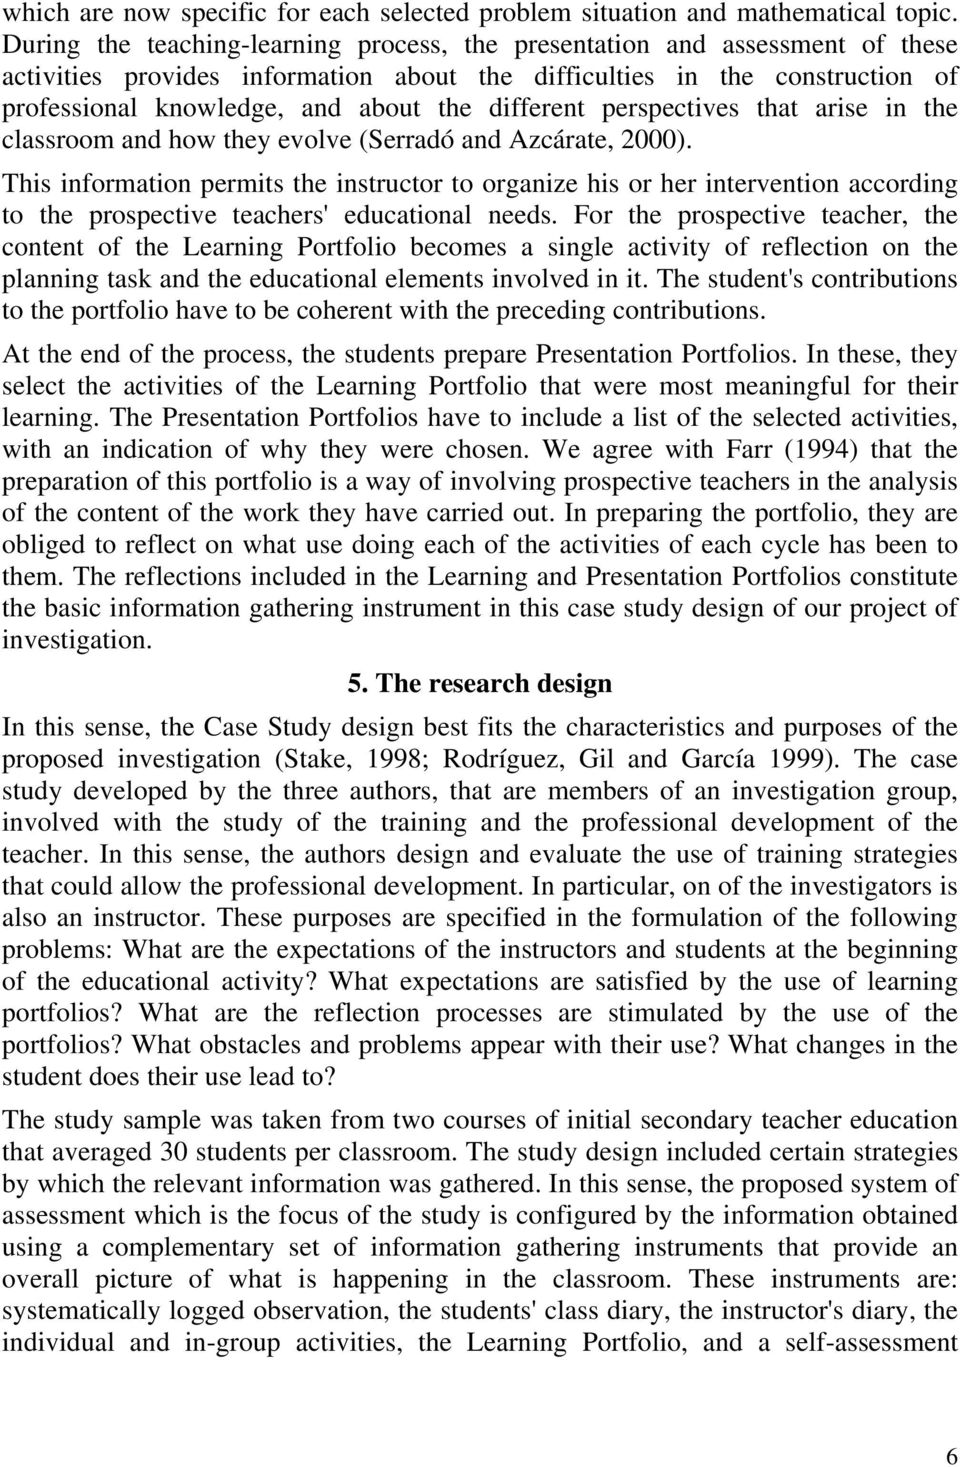 different perspectives that arise in the classroom and how they evolve (Serradó and Azcárate, 2000).